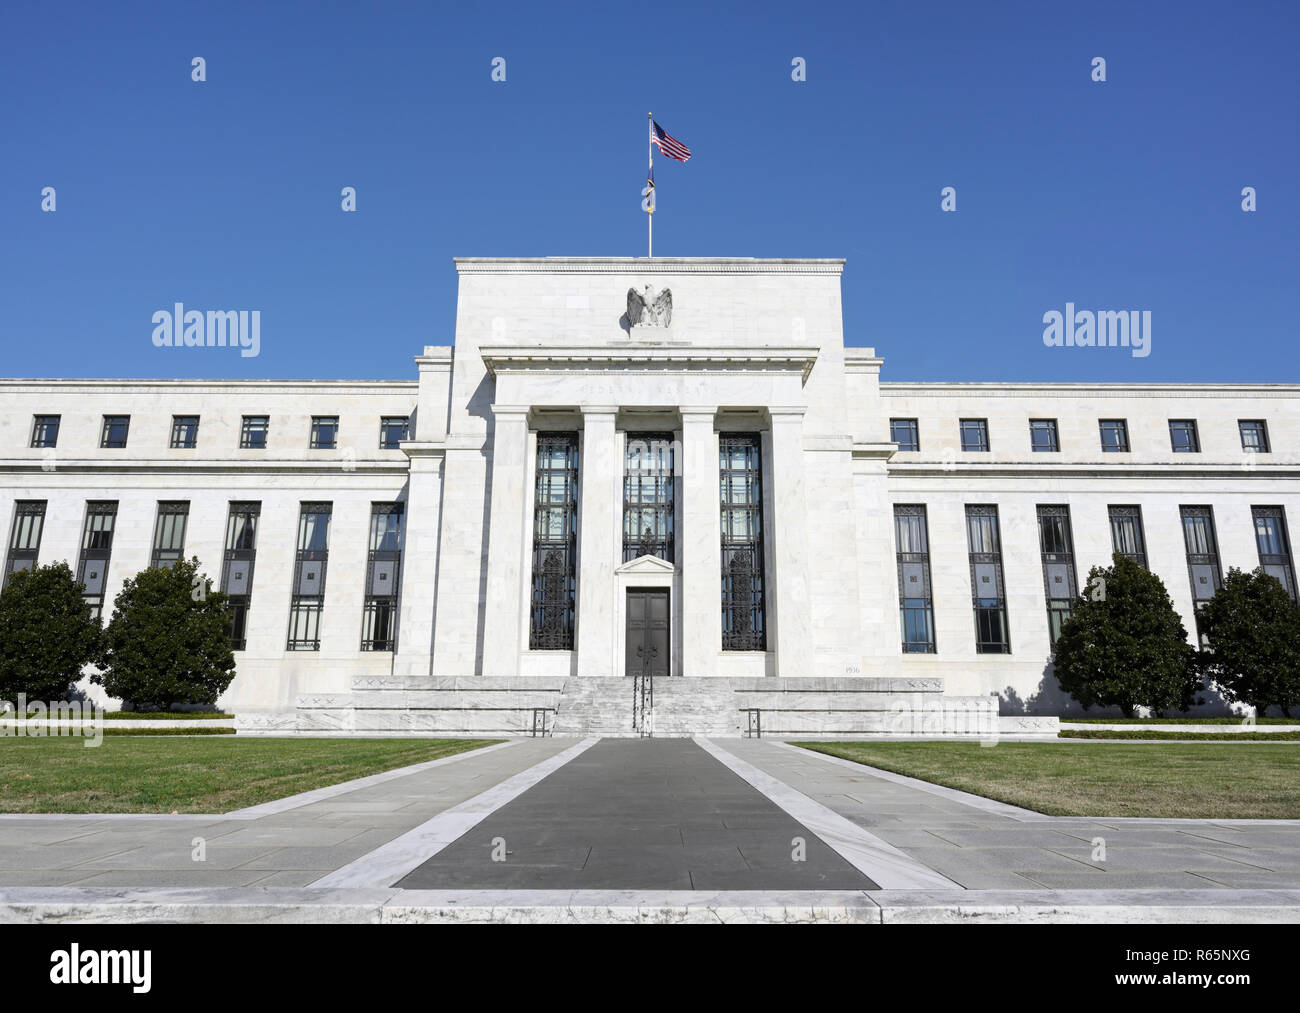 Federal Reserve Bank Building, Washington DC Photo Stock